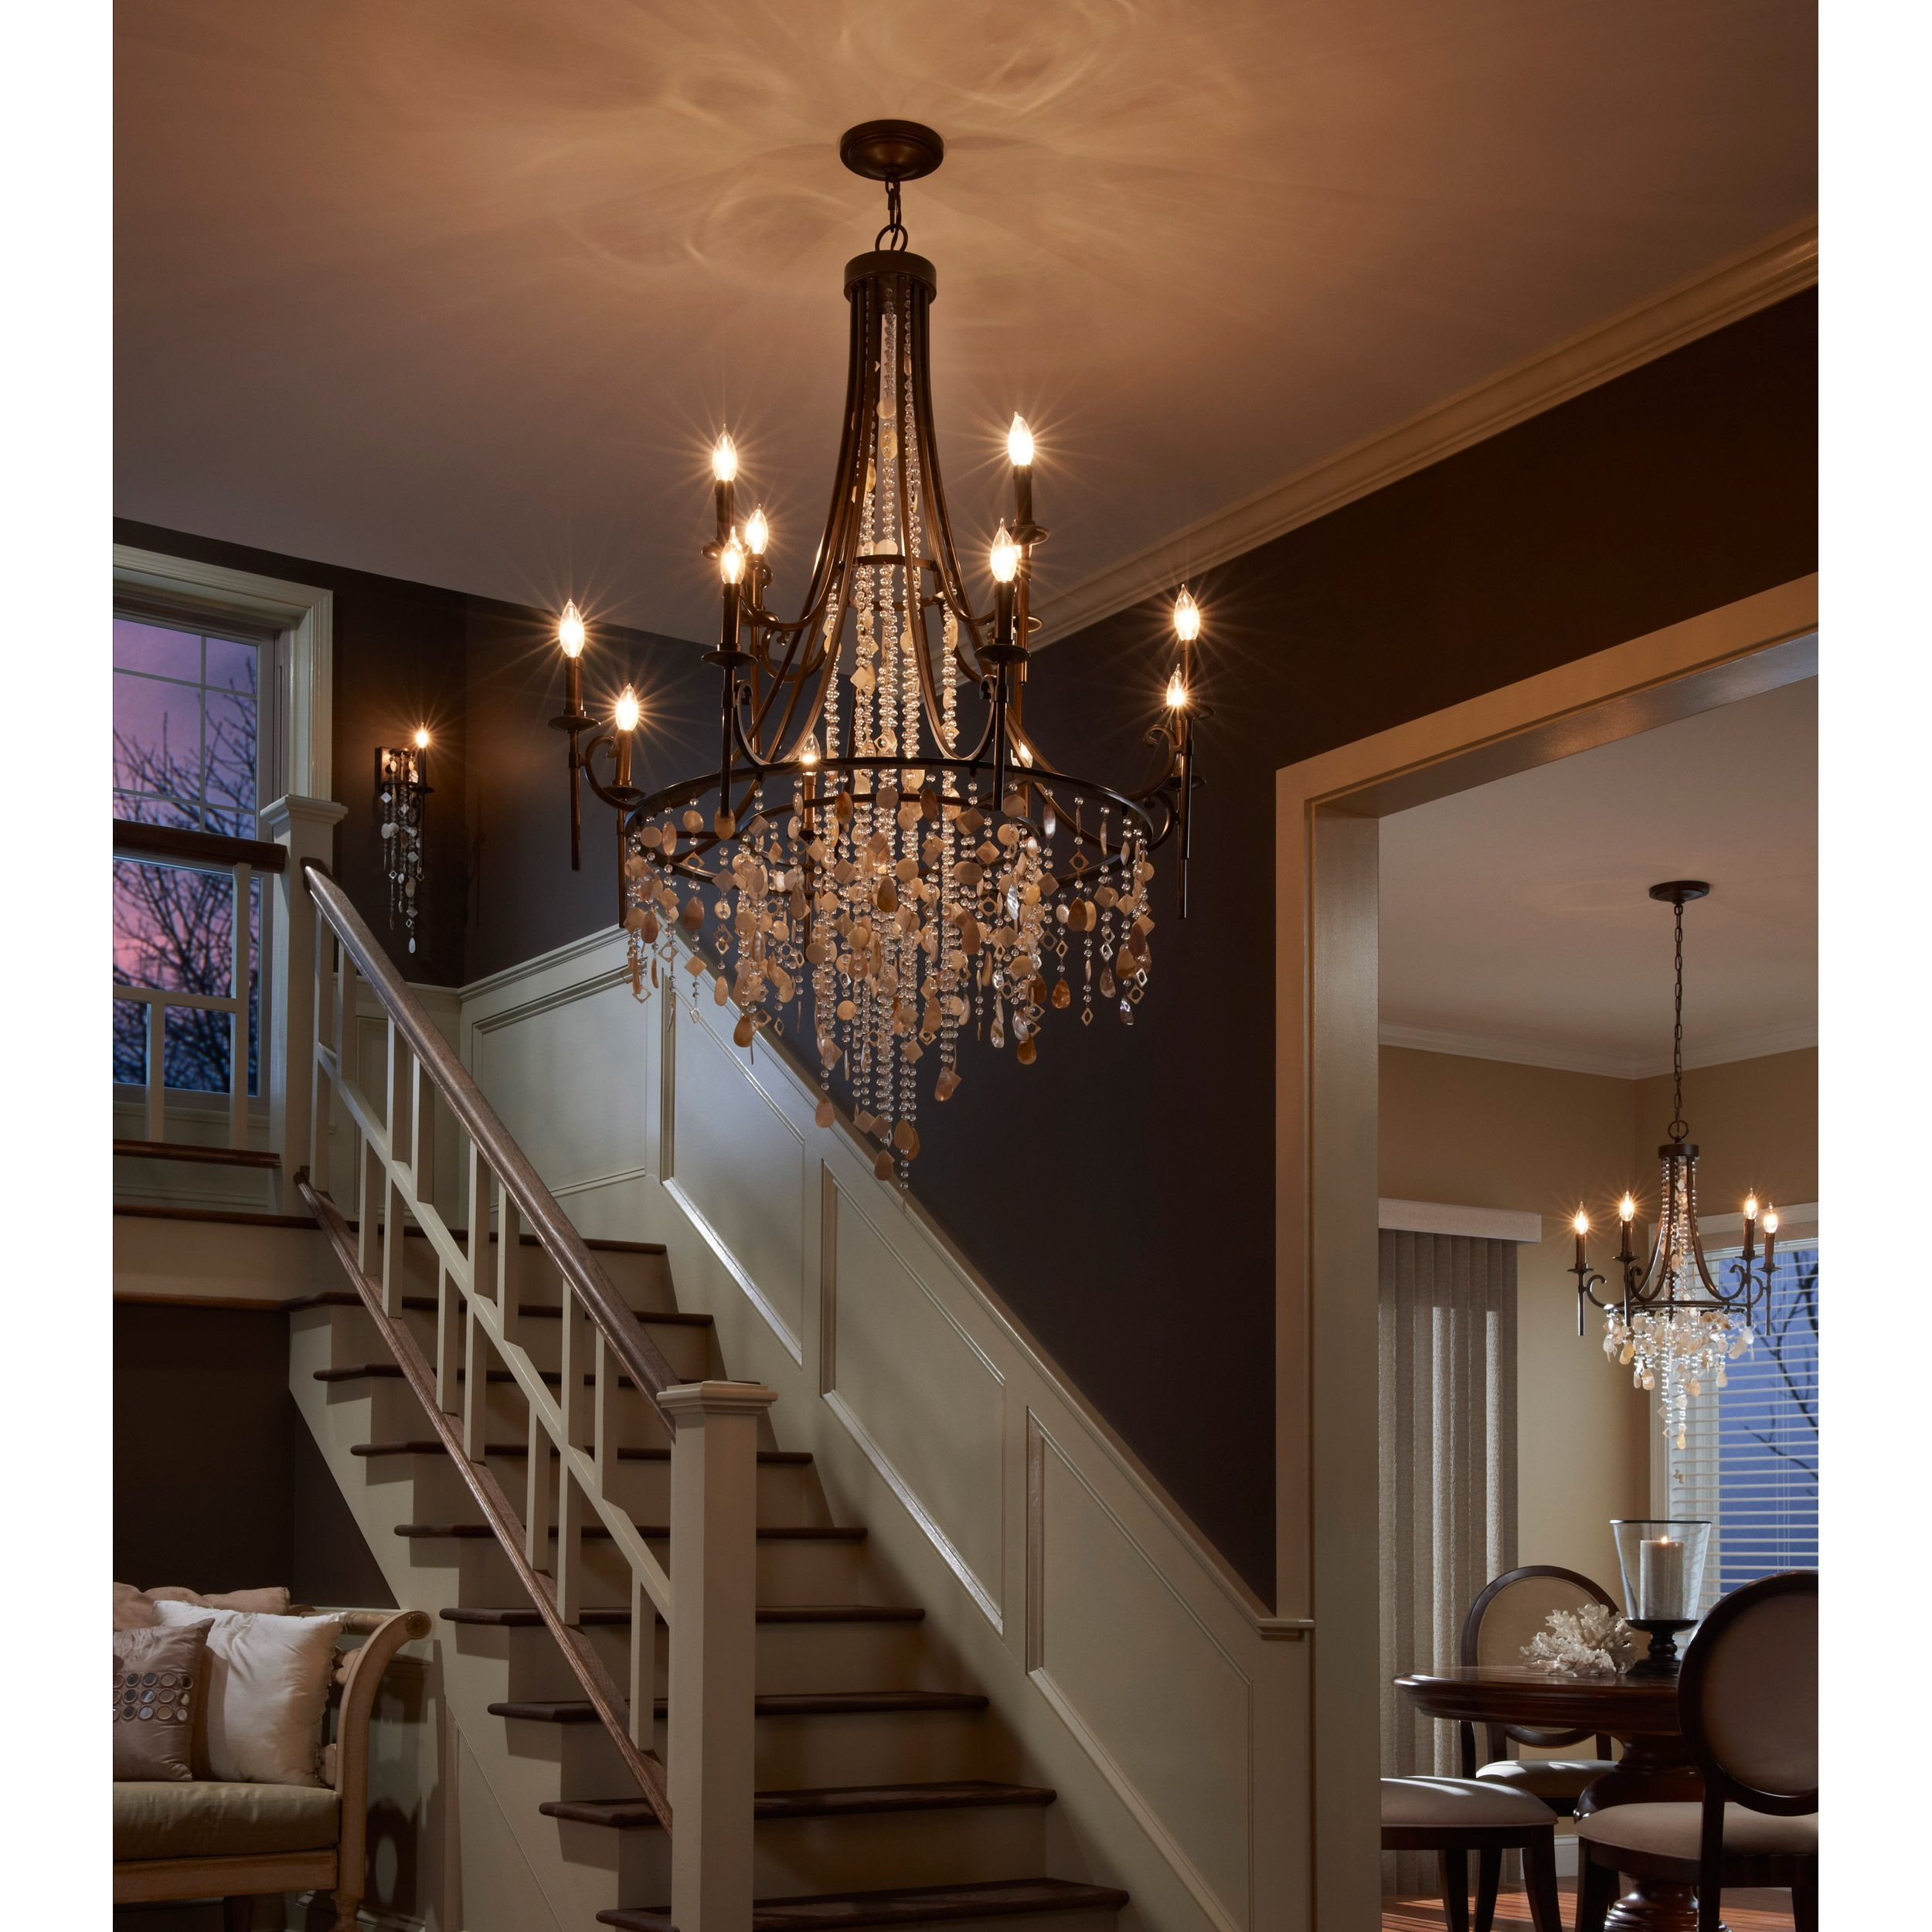 feiss regarding inch most best chandelier lights light current of lighting hanging murray wide mini chandeliers furniture allier